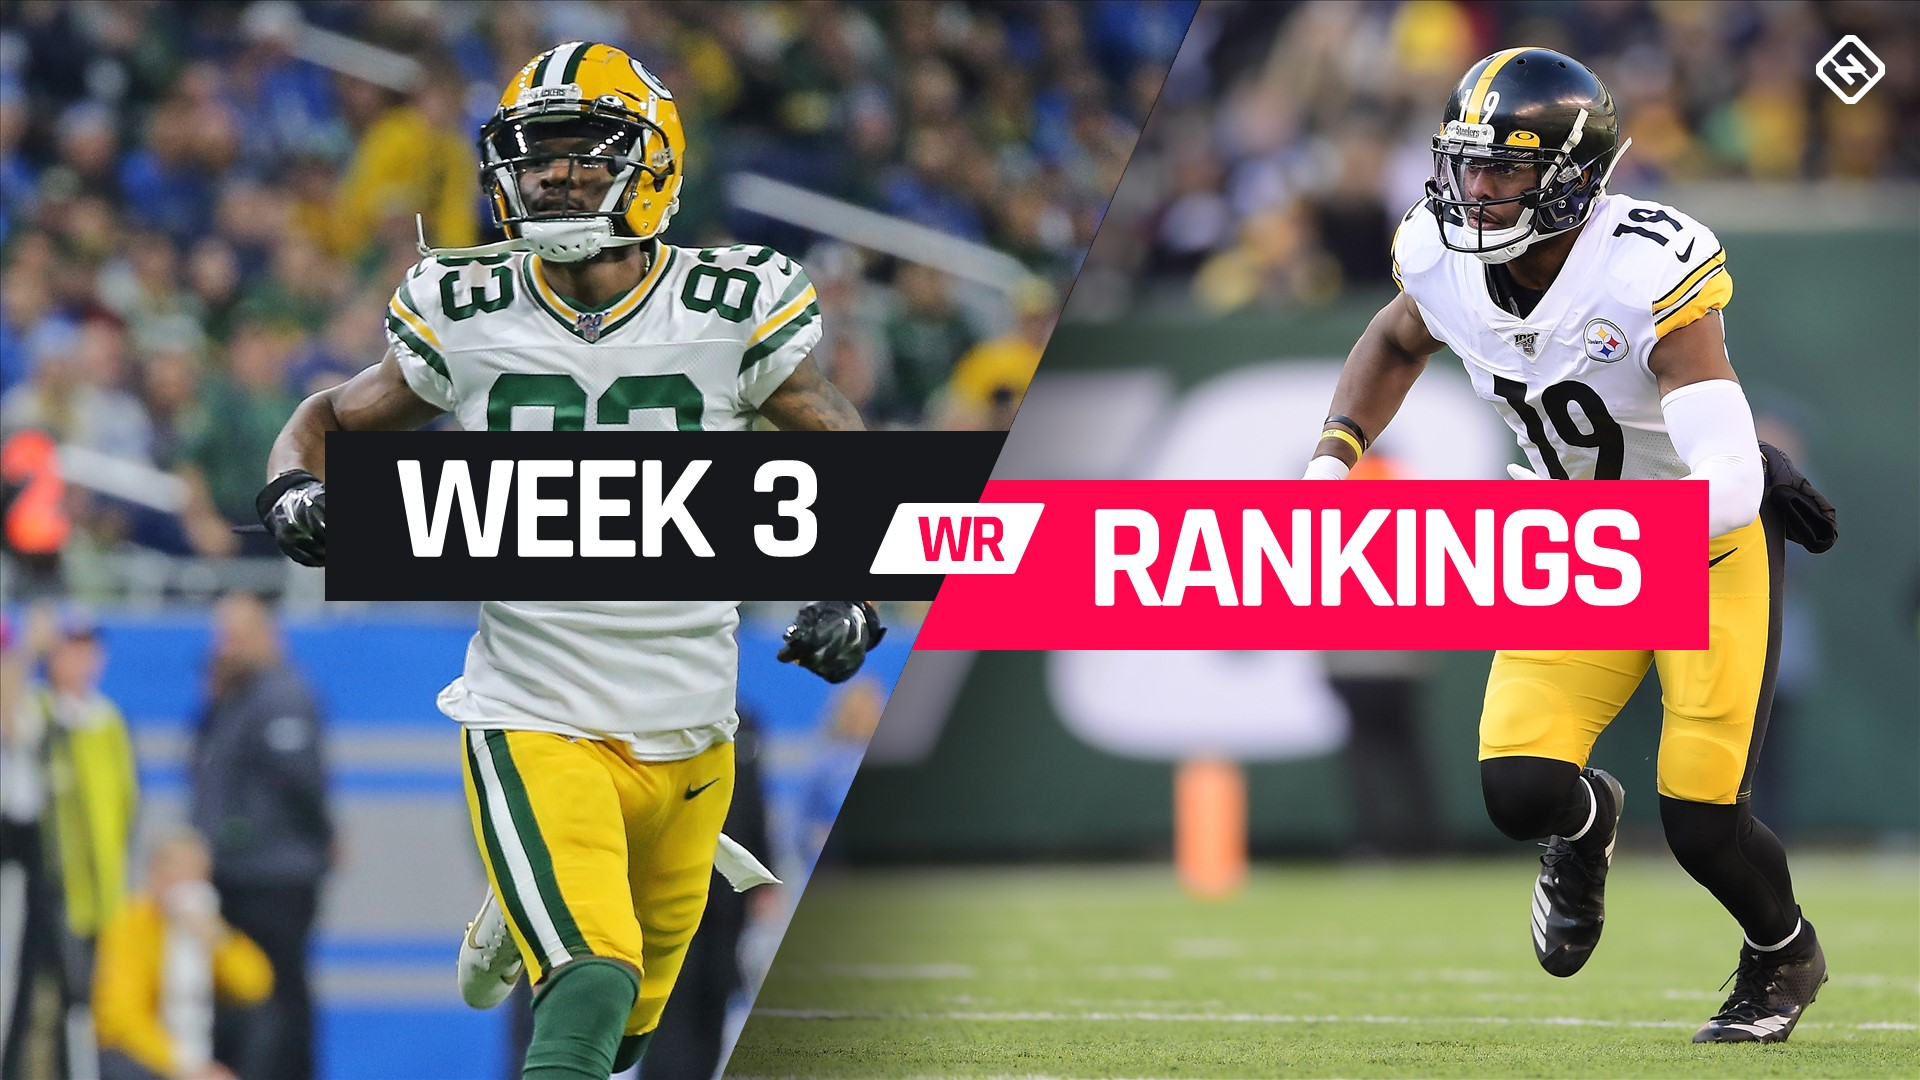 Week 3 Fantasy WR Rankings: Must-starts, sleepers, potential busts at wide receiver